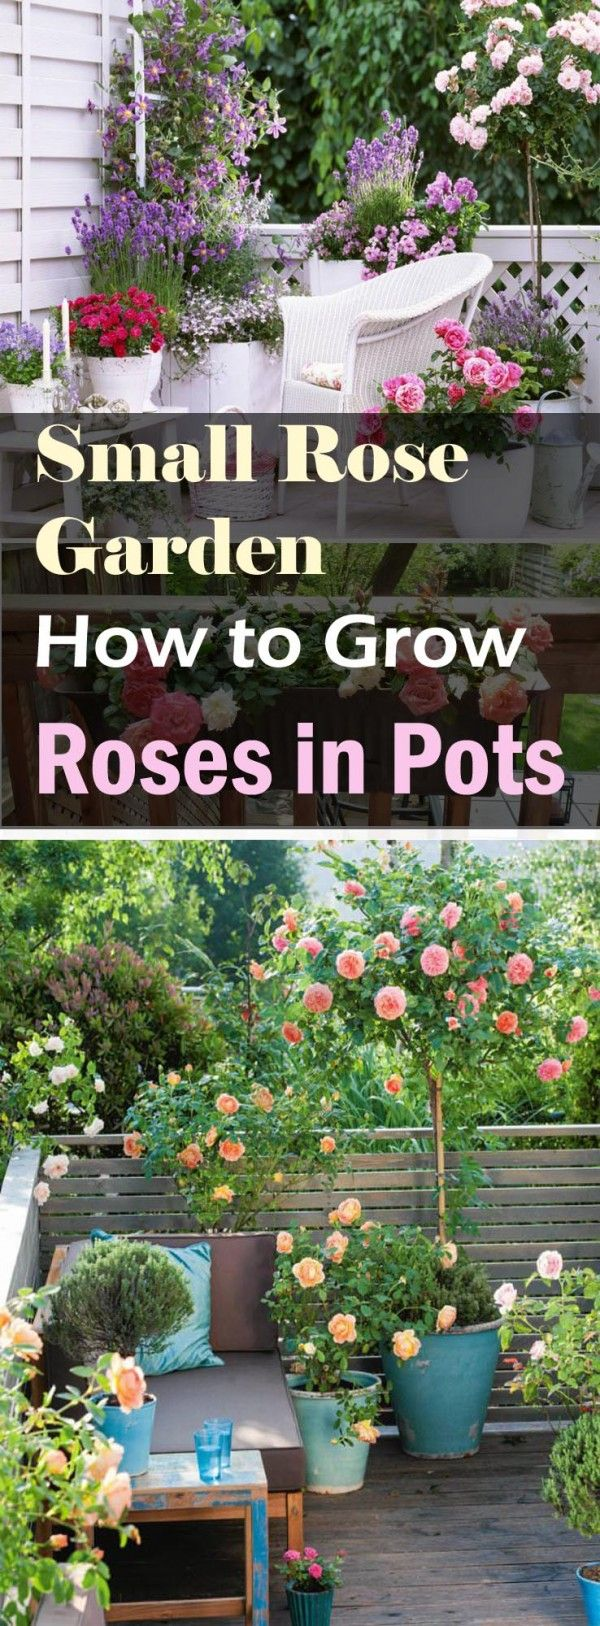 Rose garden ideas pictures - How To Make Small Rose Garden In Containers